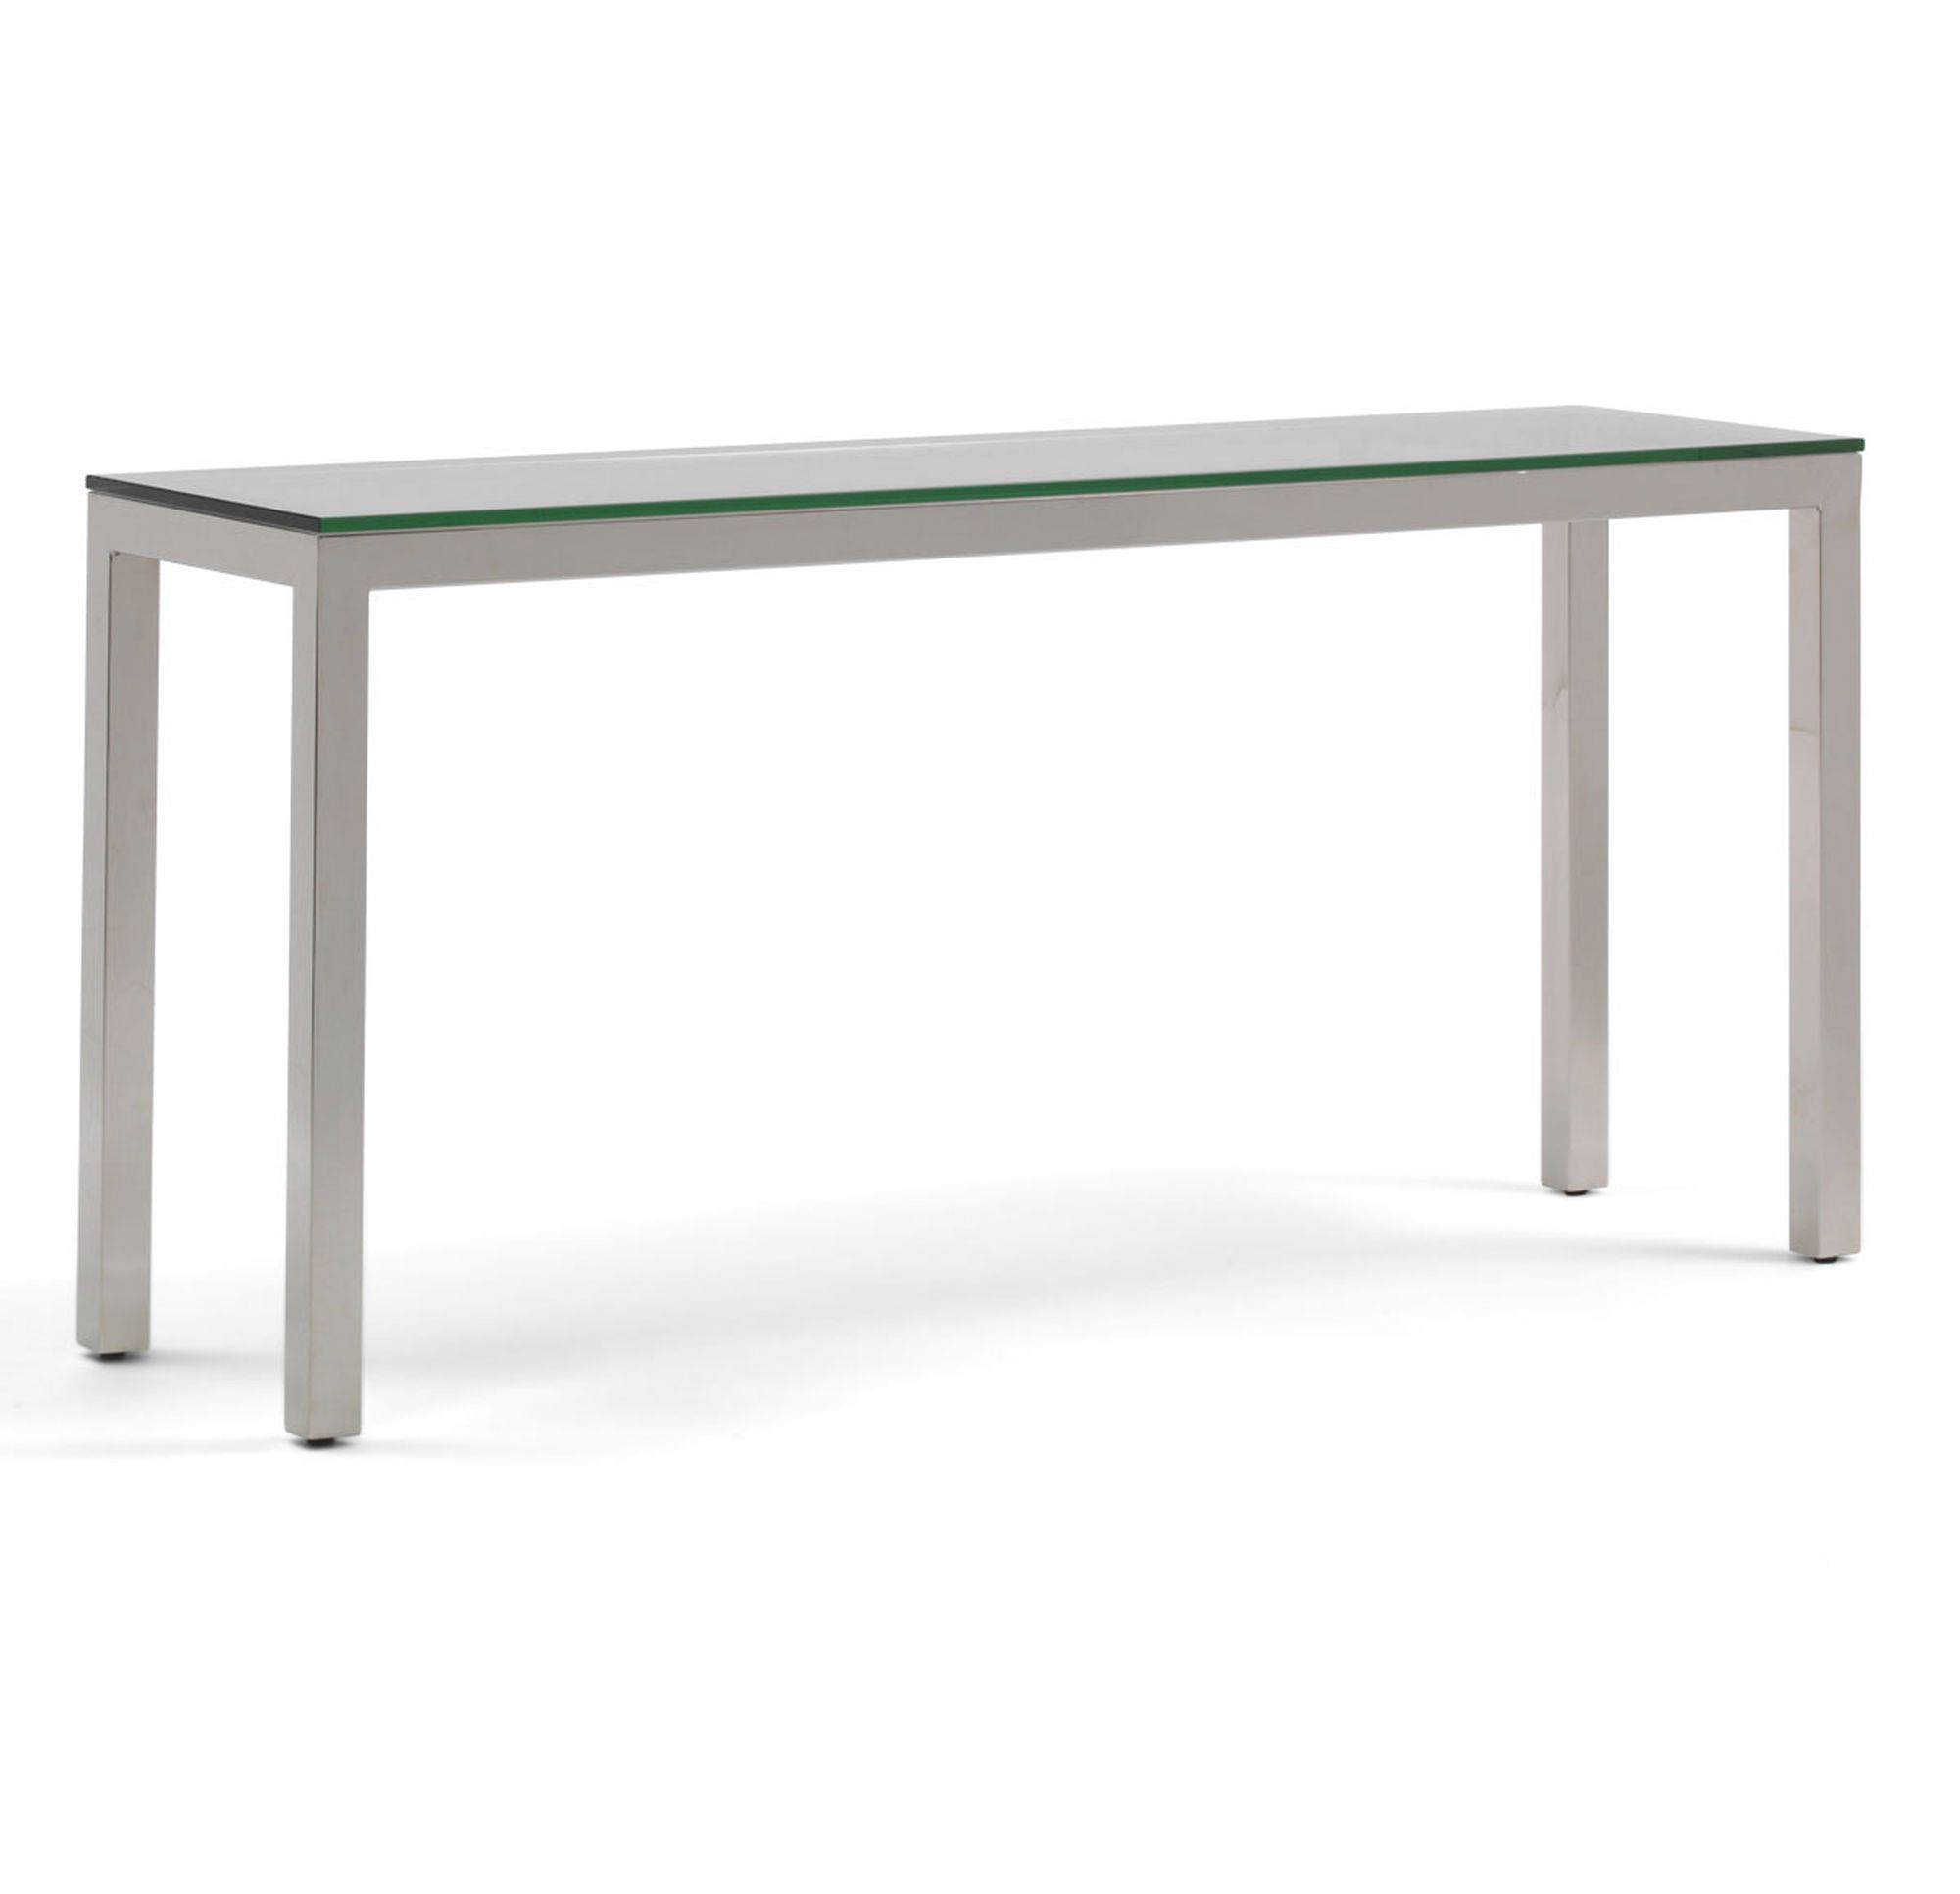 Classic Parsons Console Table – Polished Stainless Steel, , Hi Res Throughout Parsons Clear Glass Top & Brass Base 48x16 Console Tables (View 9 of 30)